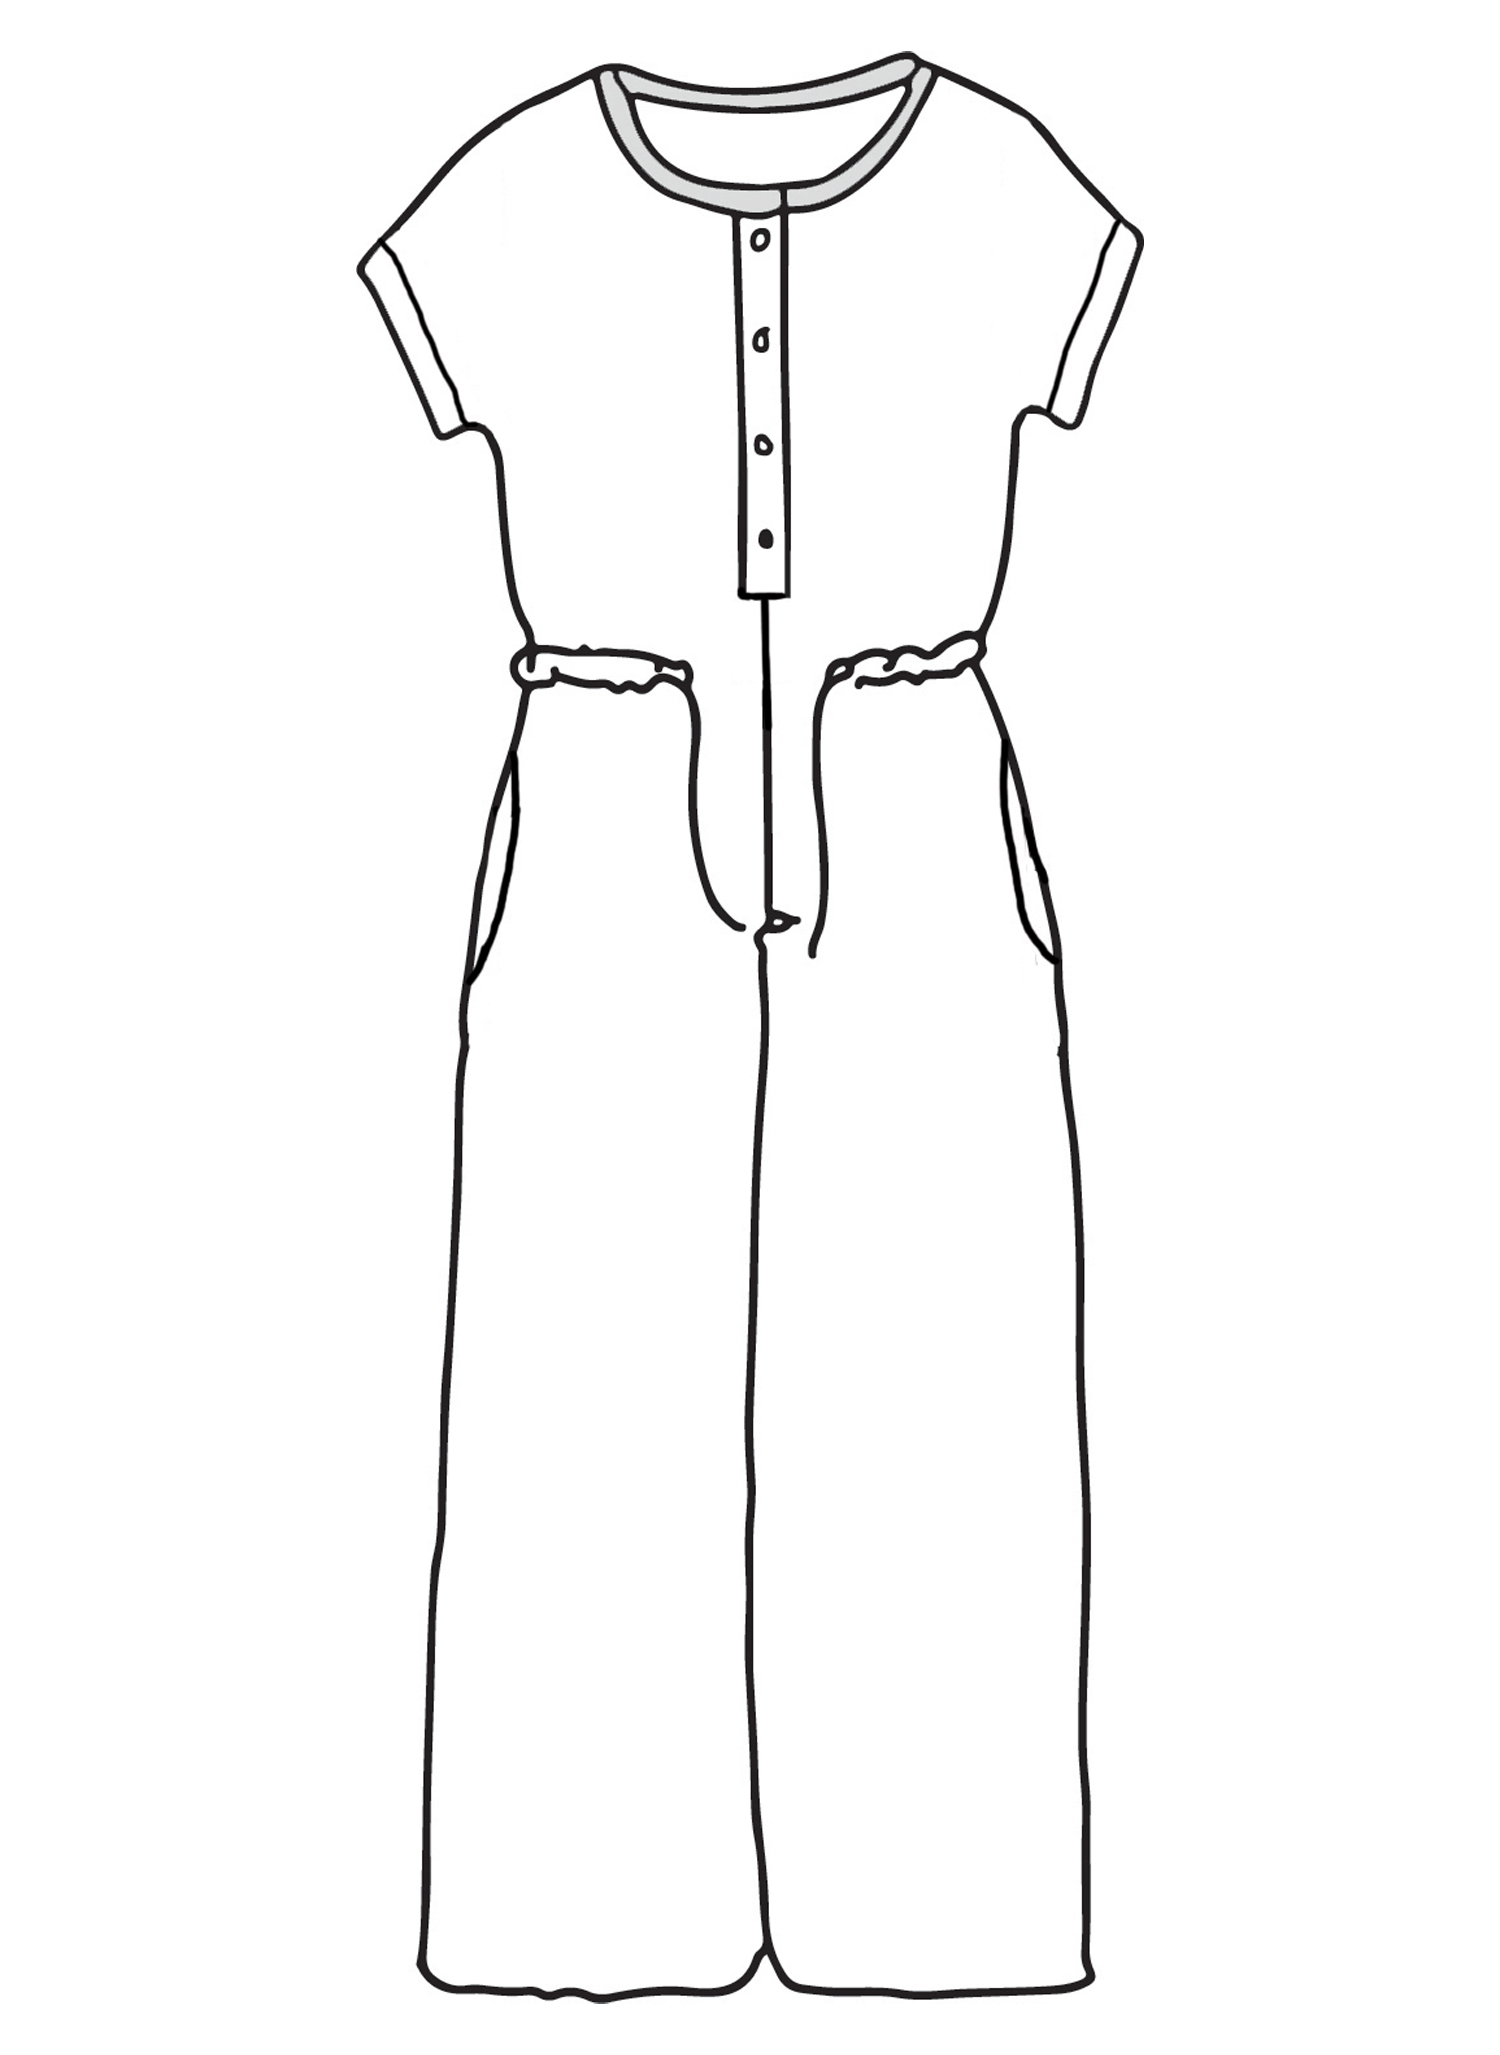 Tee Top Jumper sketch image